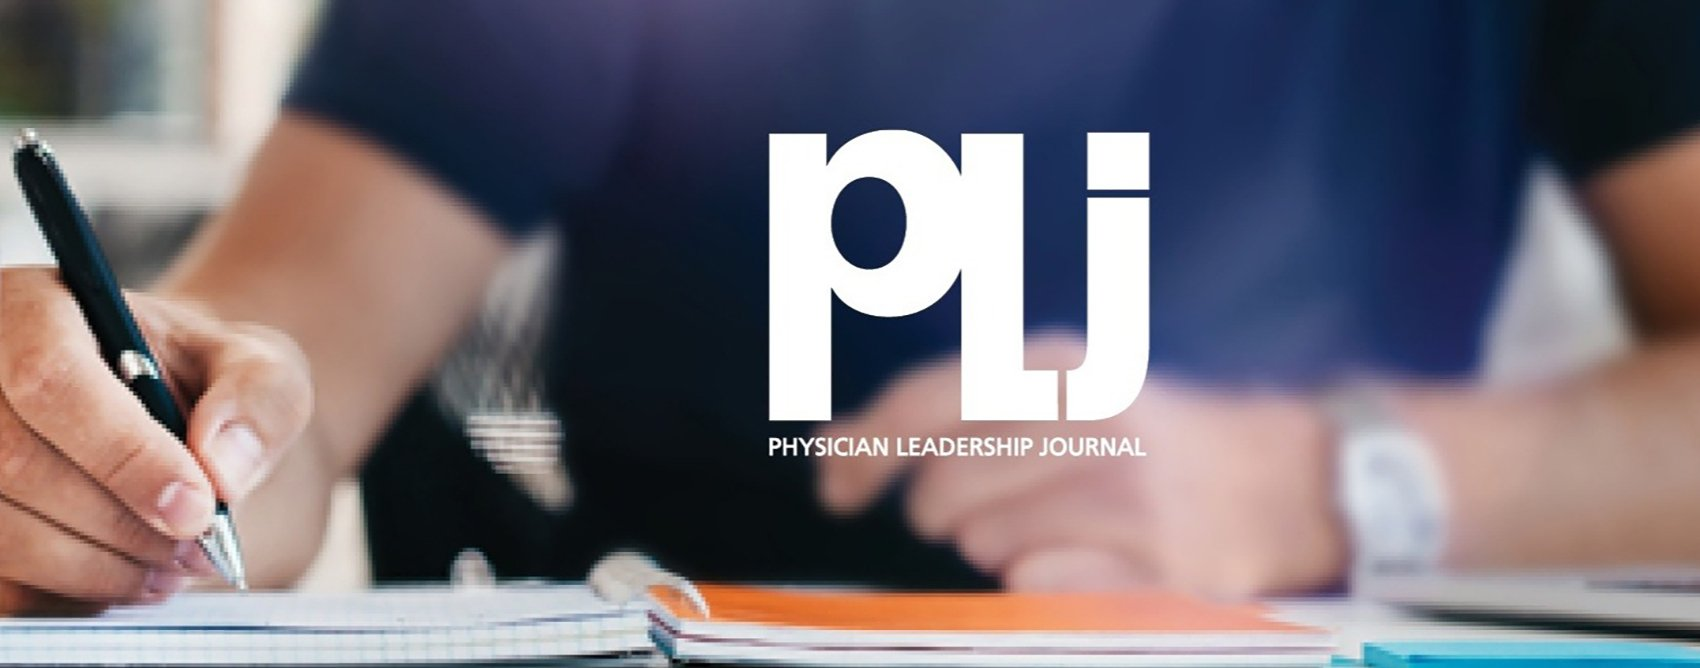 Physician Leaders – Submit a manuscript to the Physician Leadership Journal (PLJ)